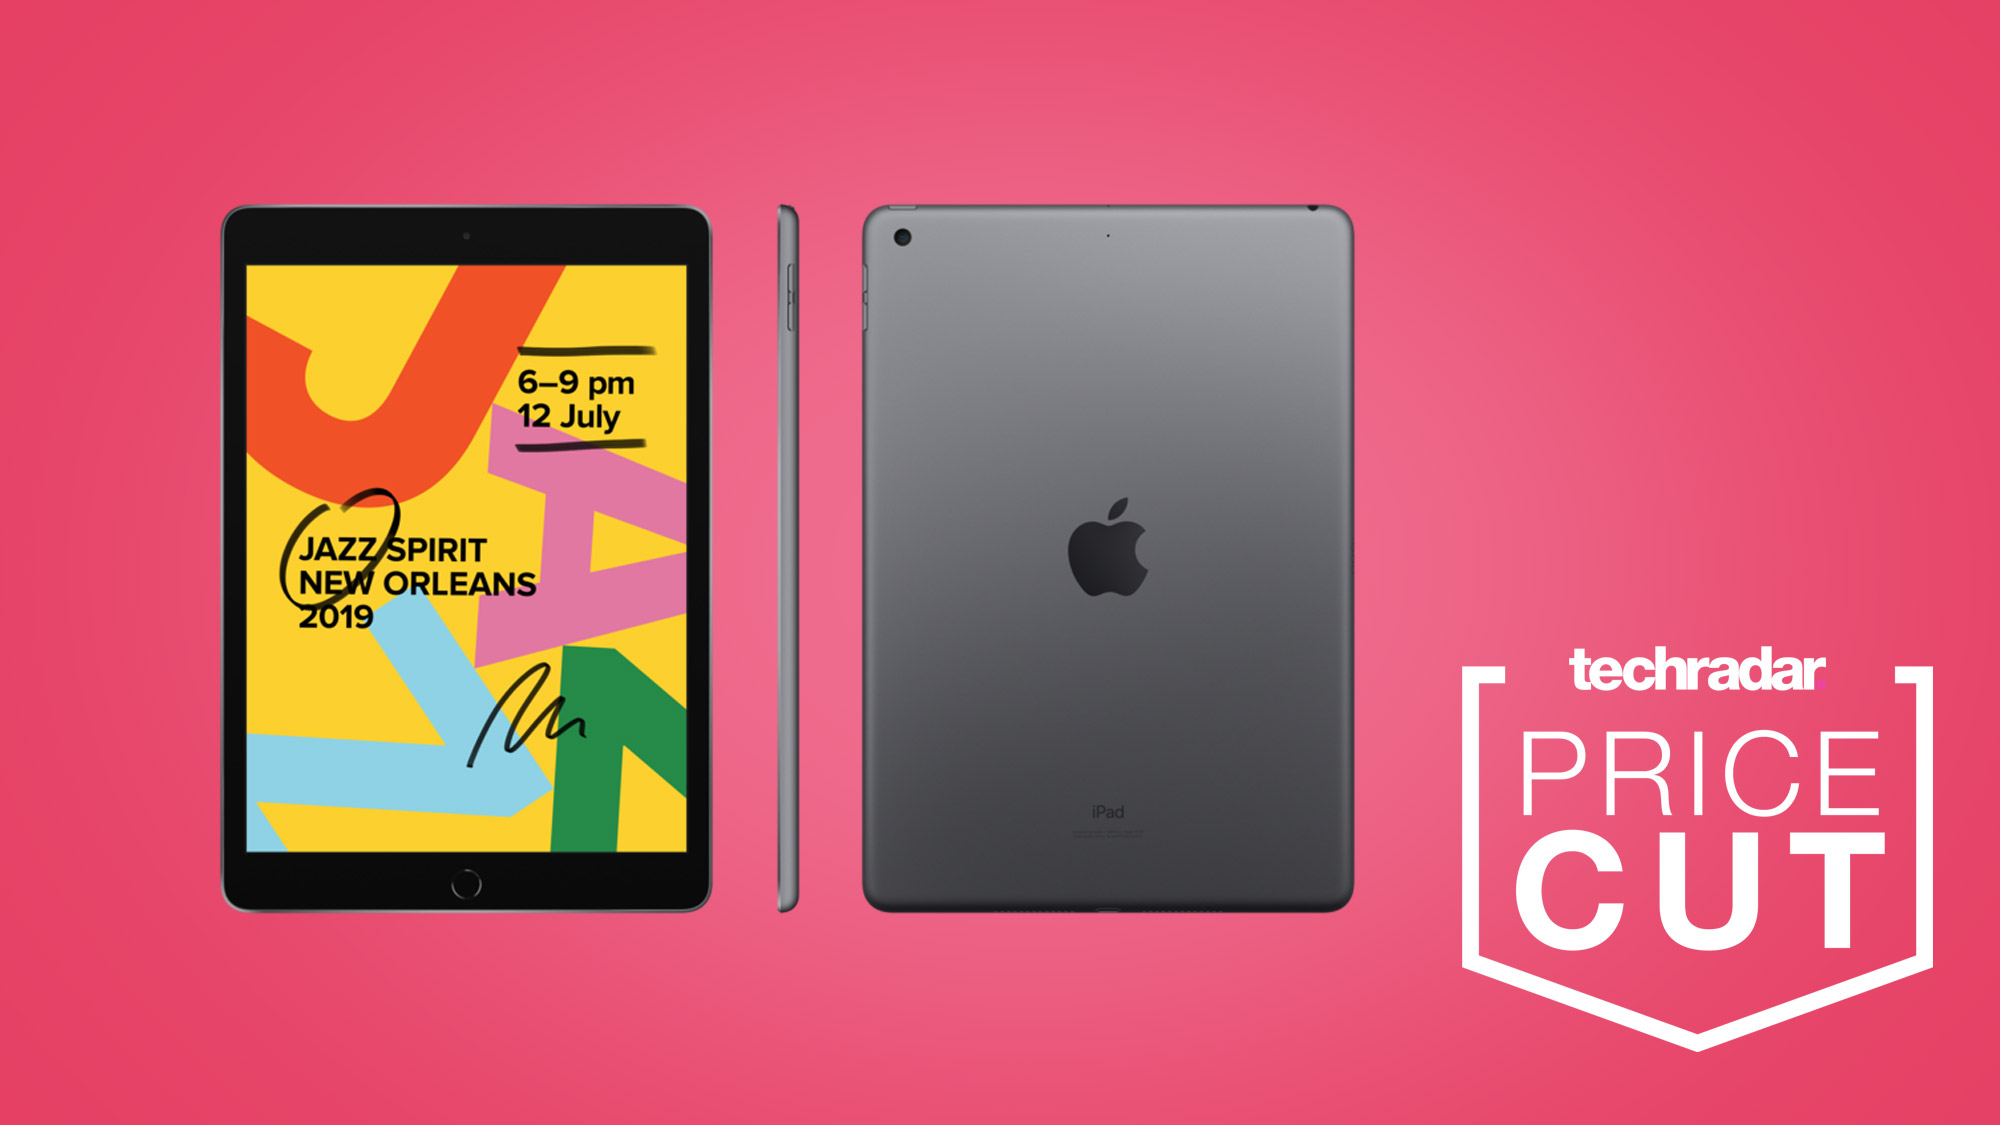 iPad sale at Best Buy: save up to $70 on the all-new 10.2-inch Apple iPad